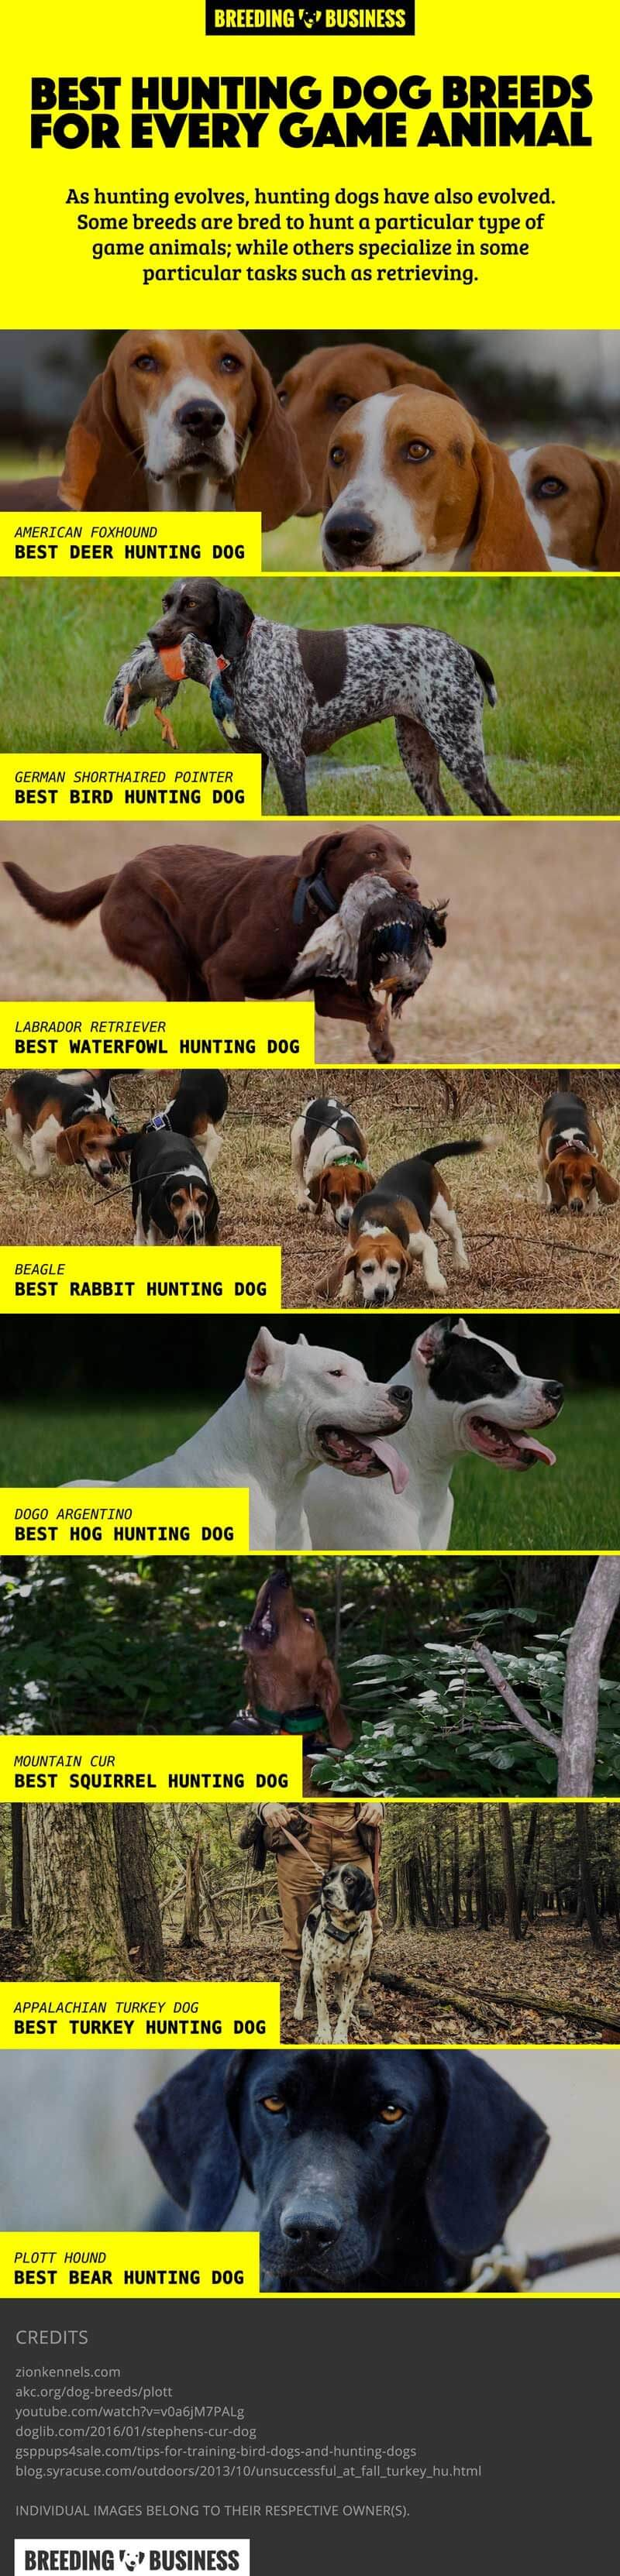 Infographic: Best Hunting Dog Breeds For Game Hunting